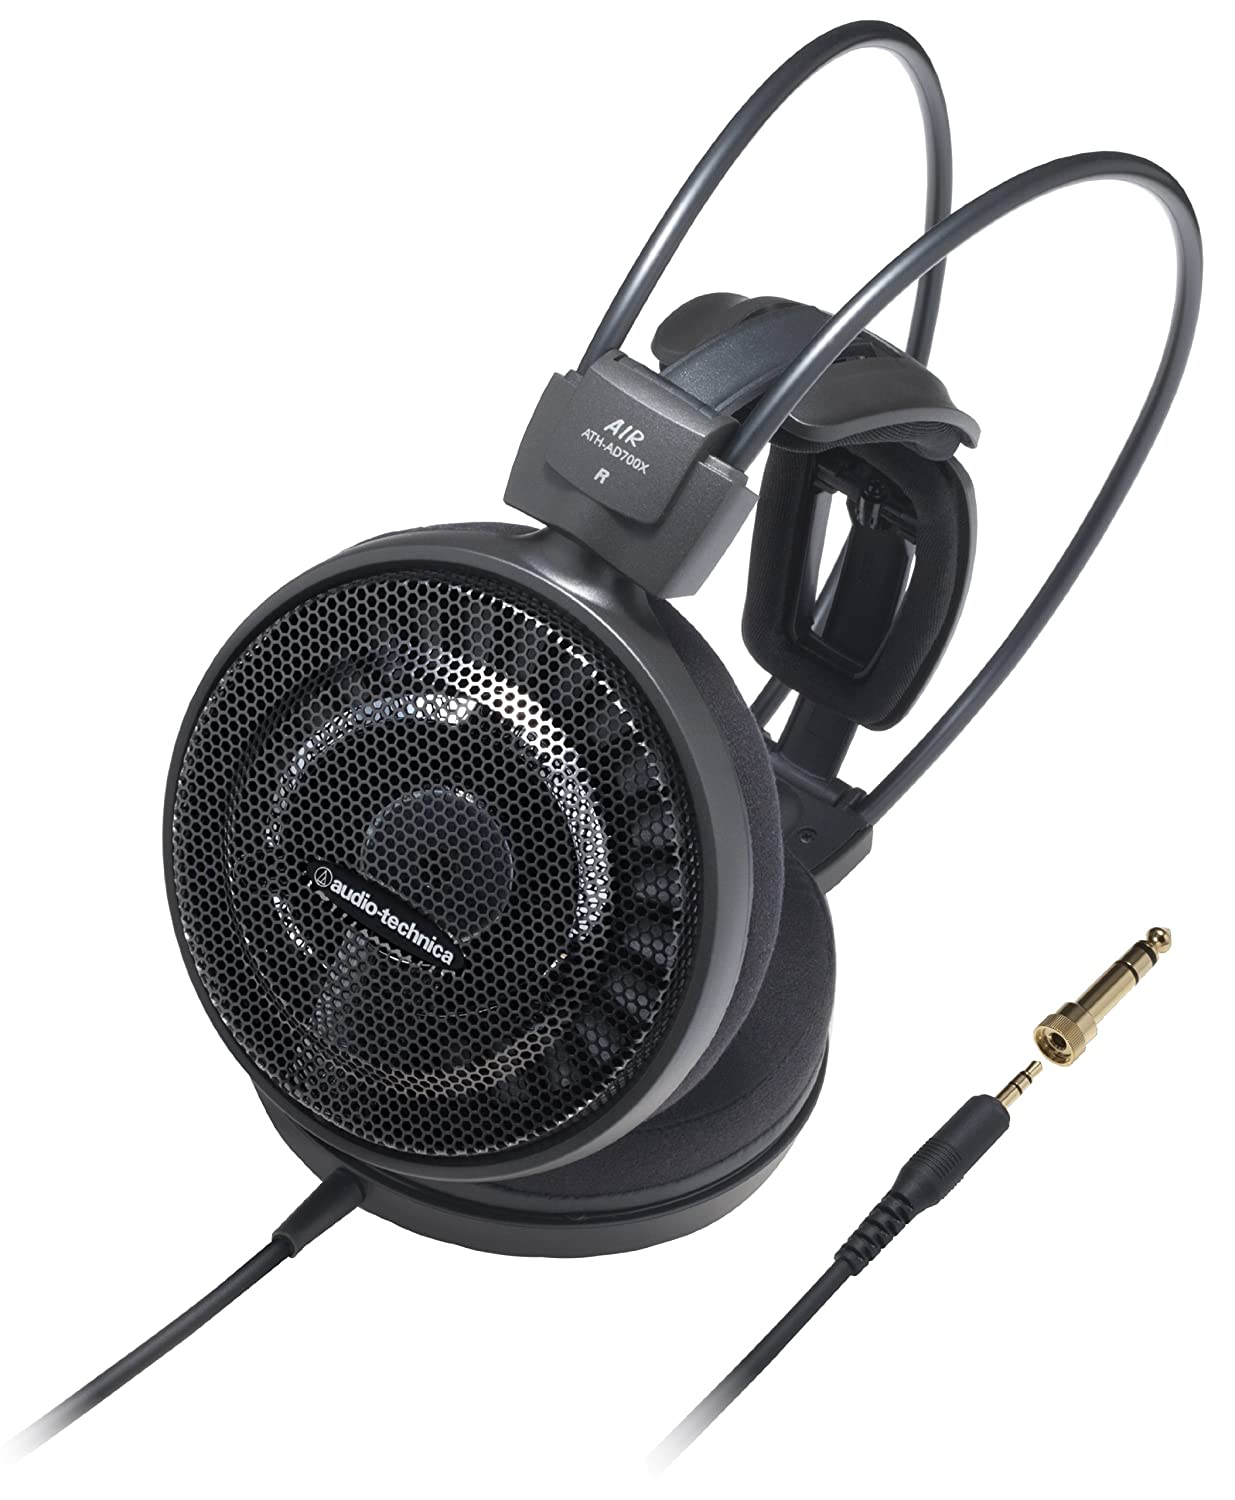 Audio-Technica ATH-AD700X Black Friday Deals